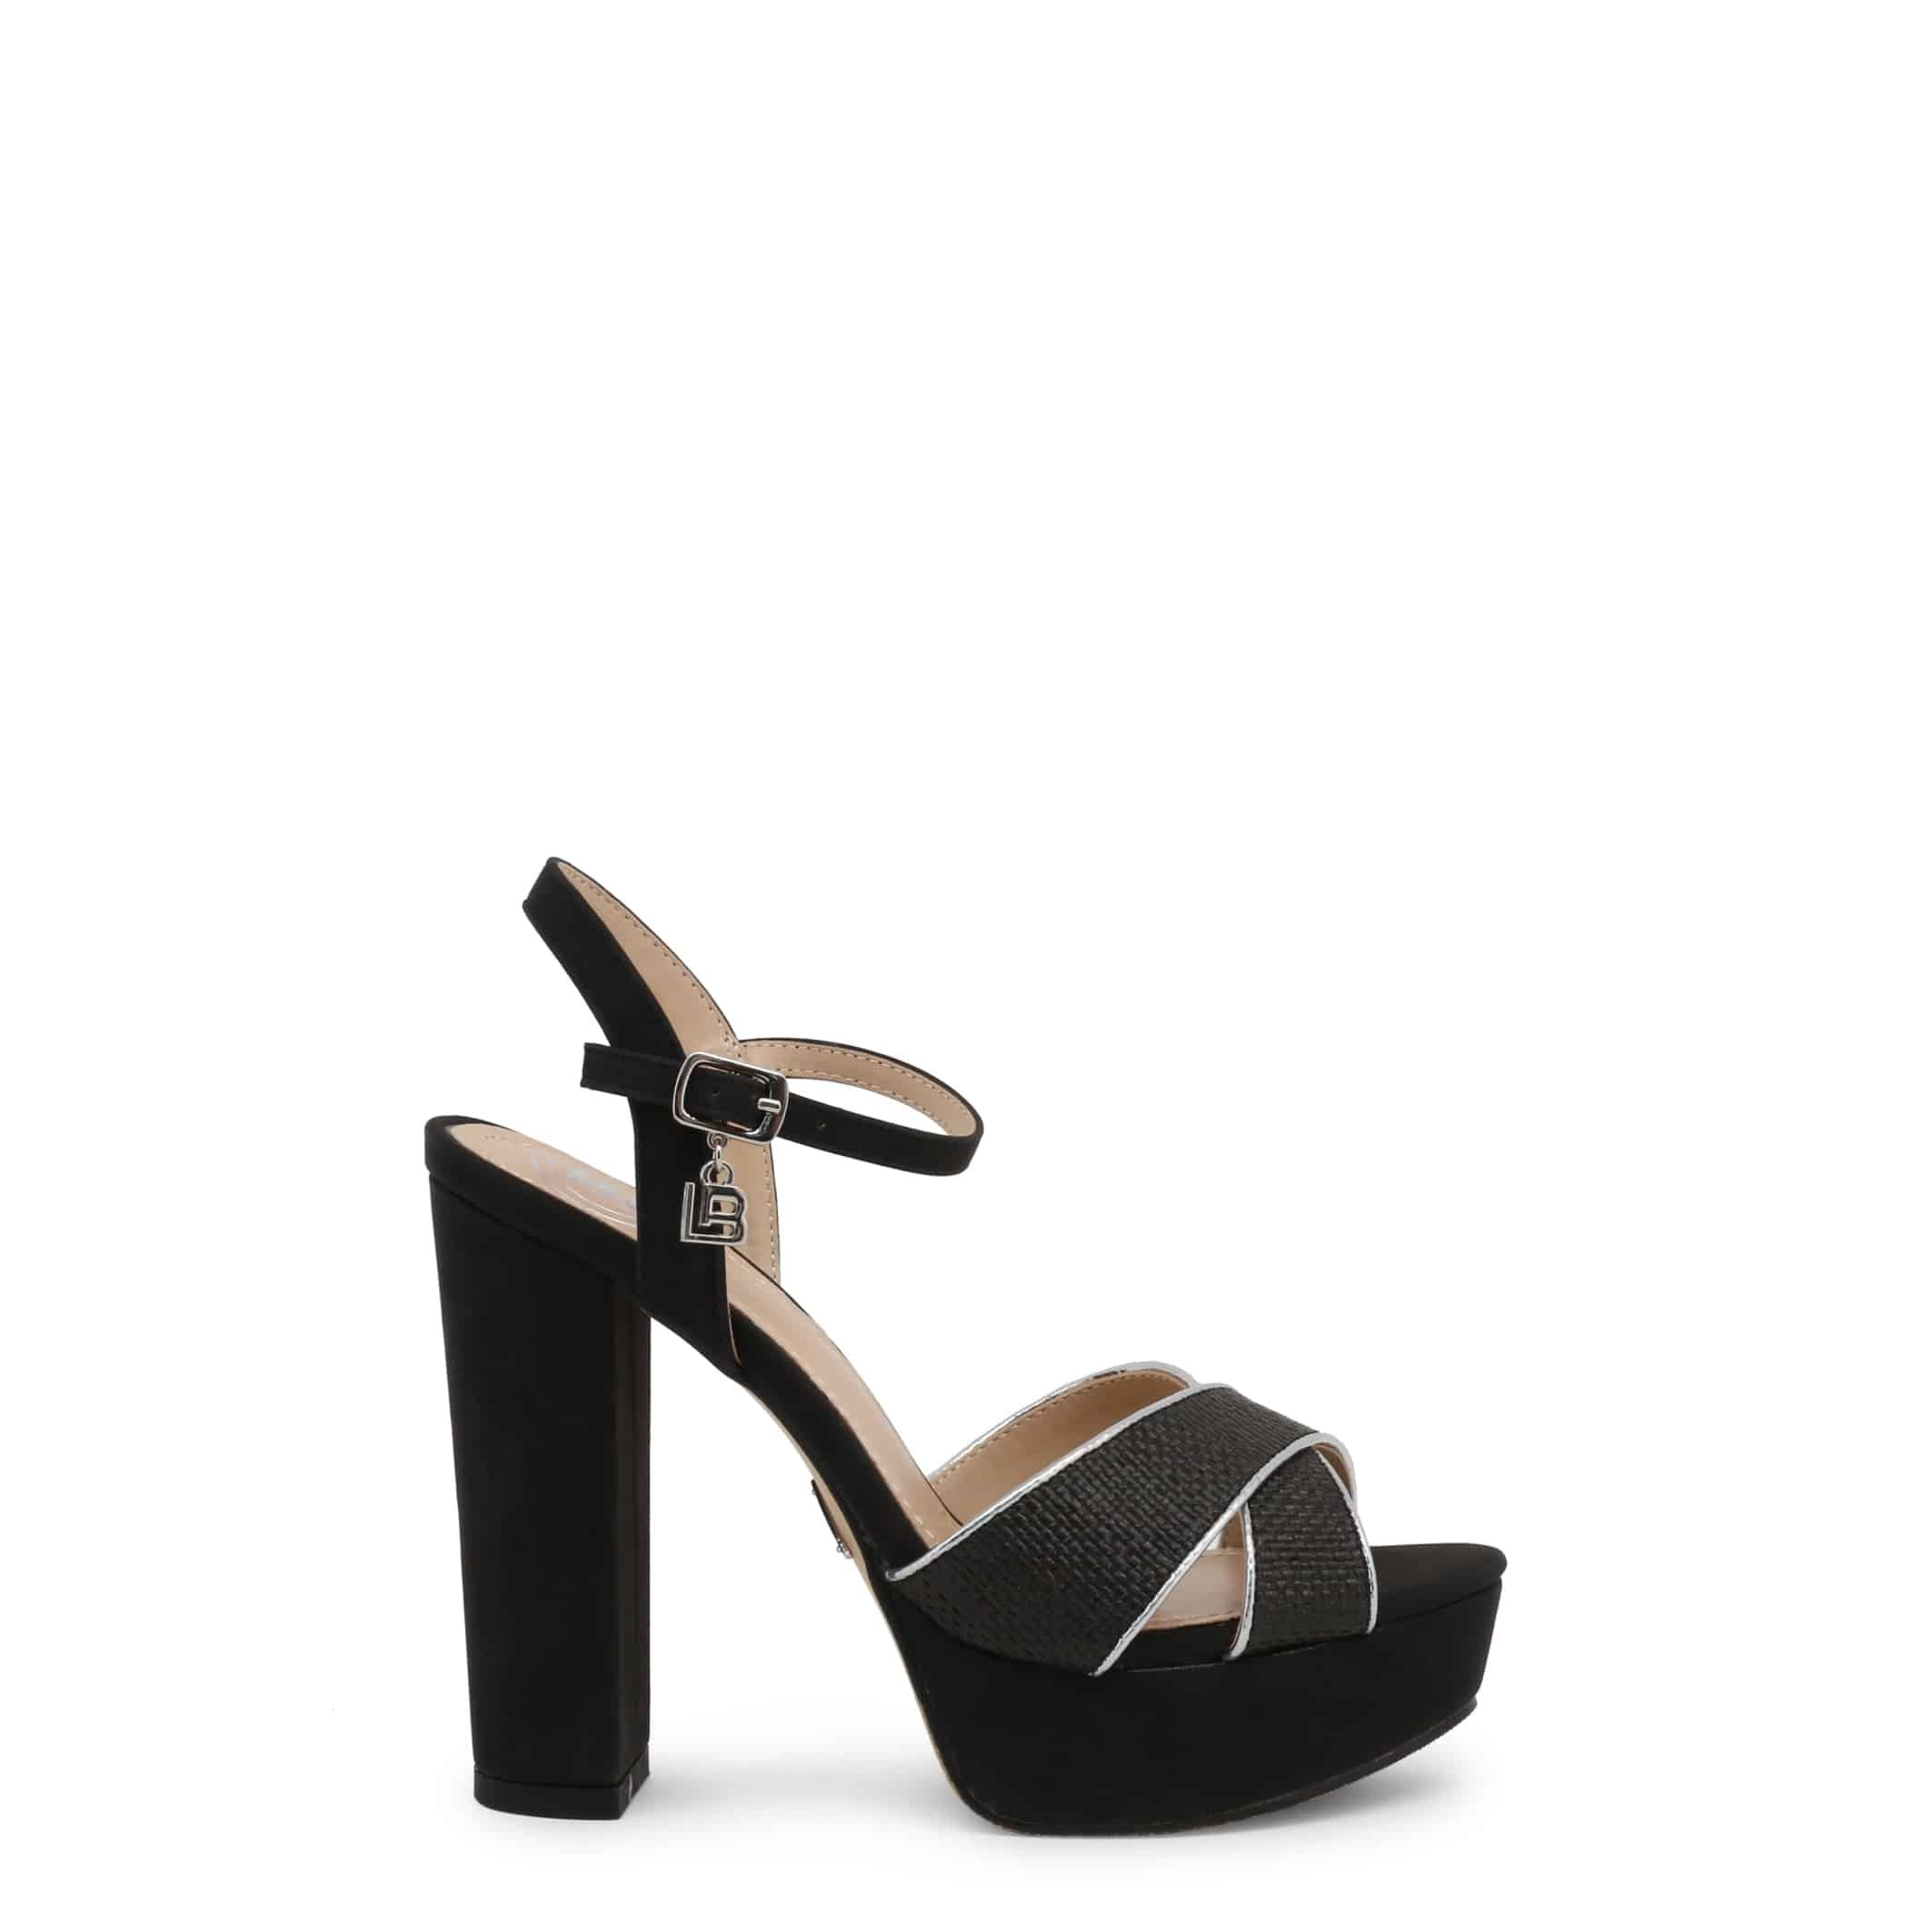 Laura Biagiotti - 6118 - Black - Women